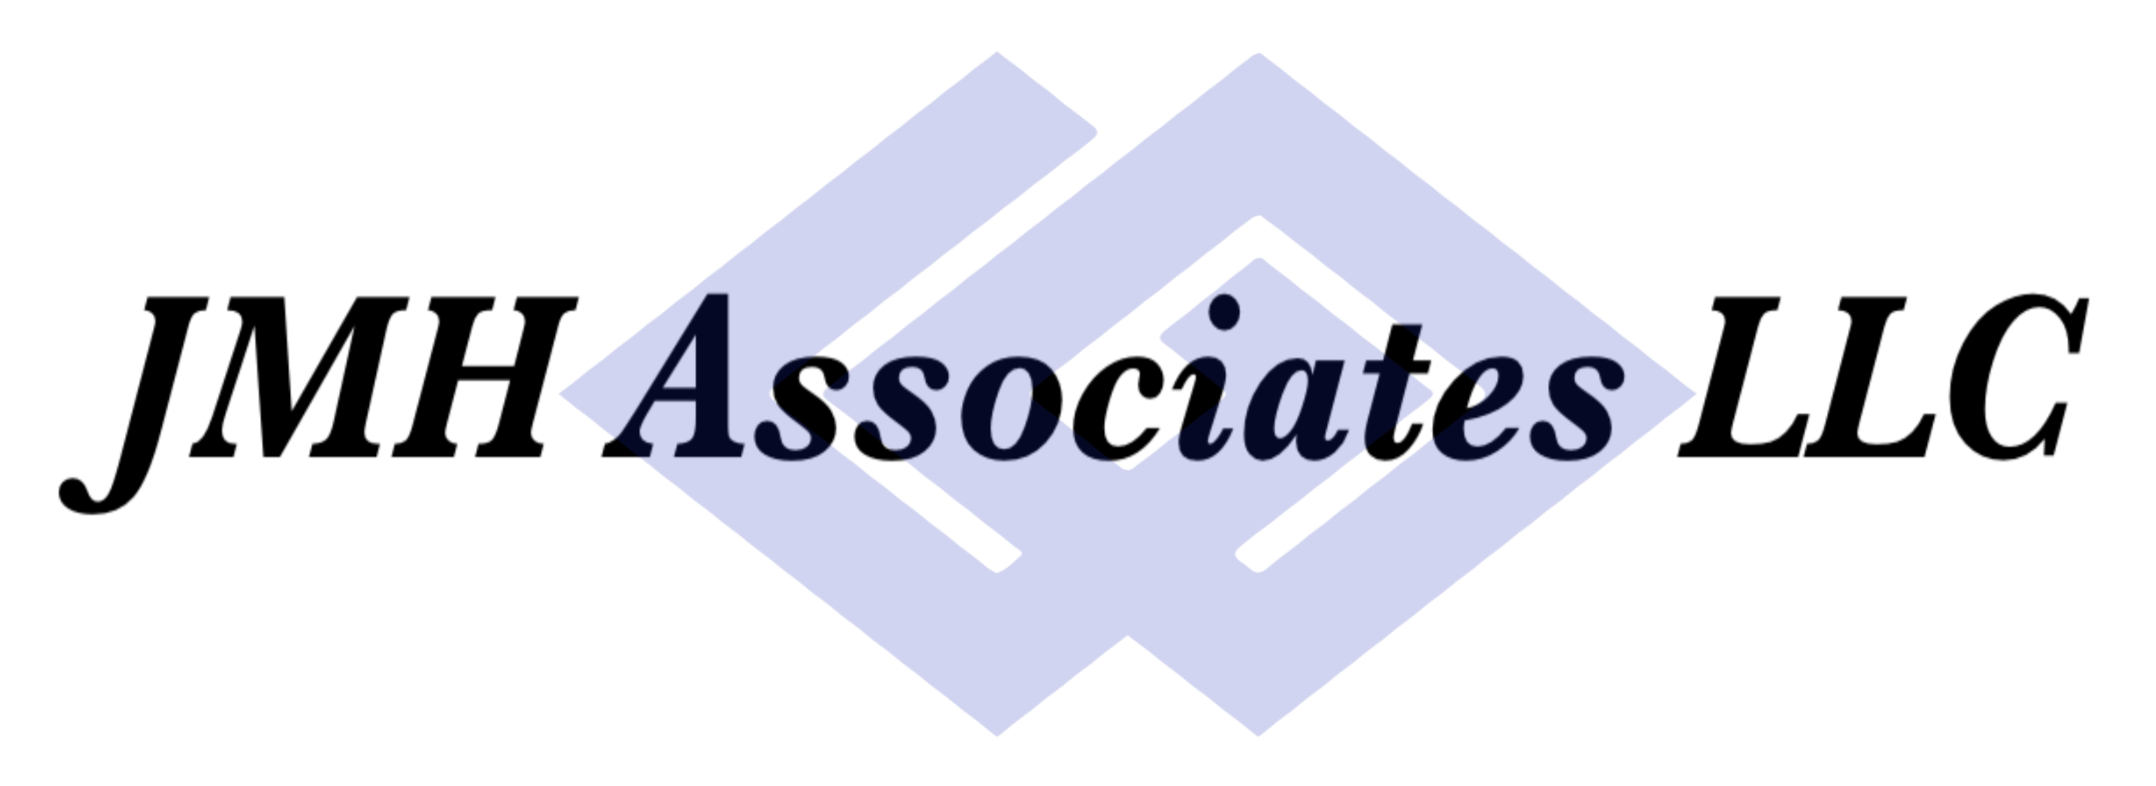 JMH Associates LLC Logo